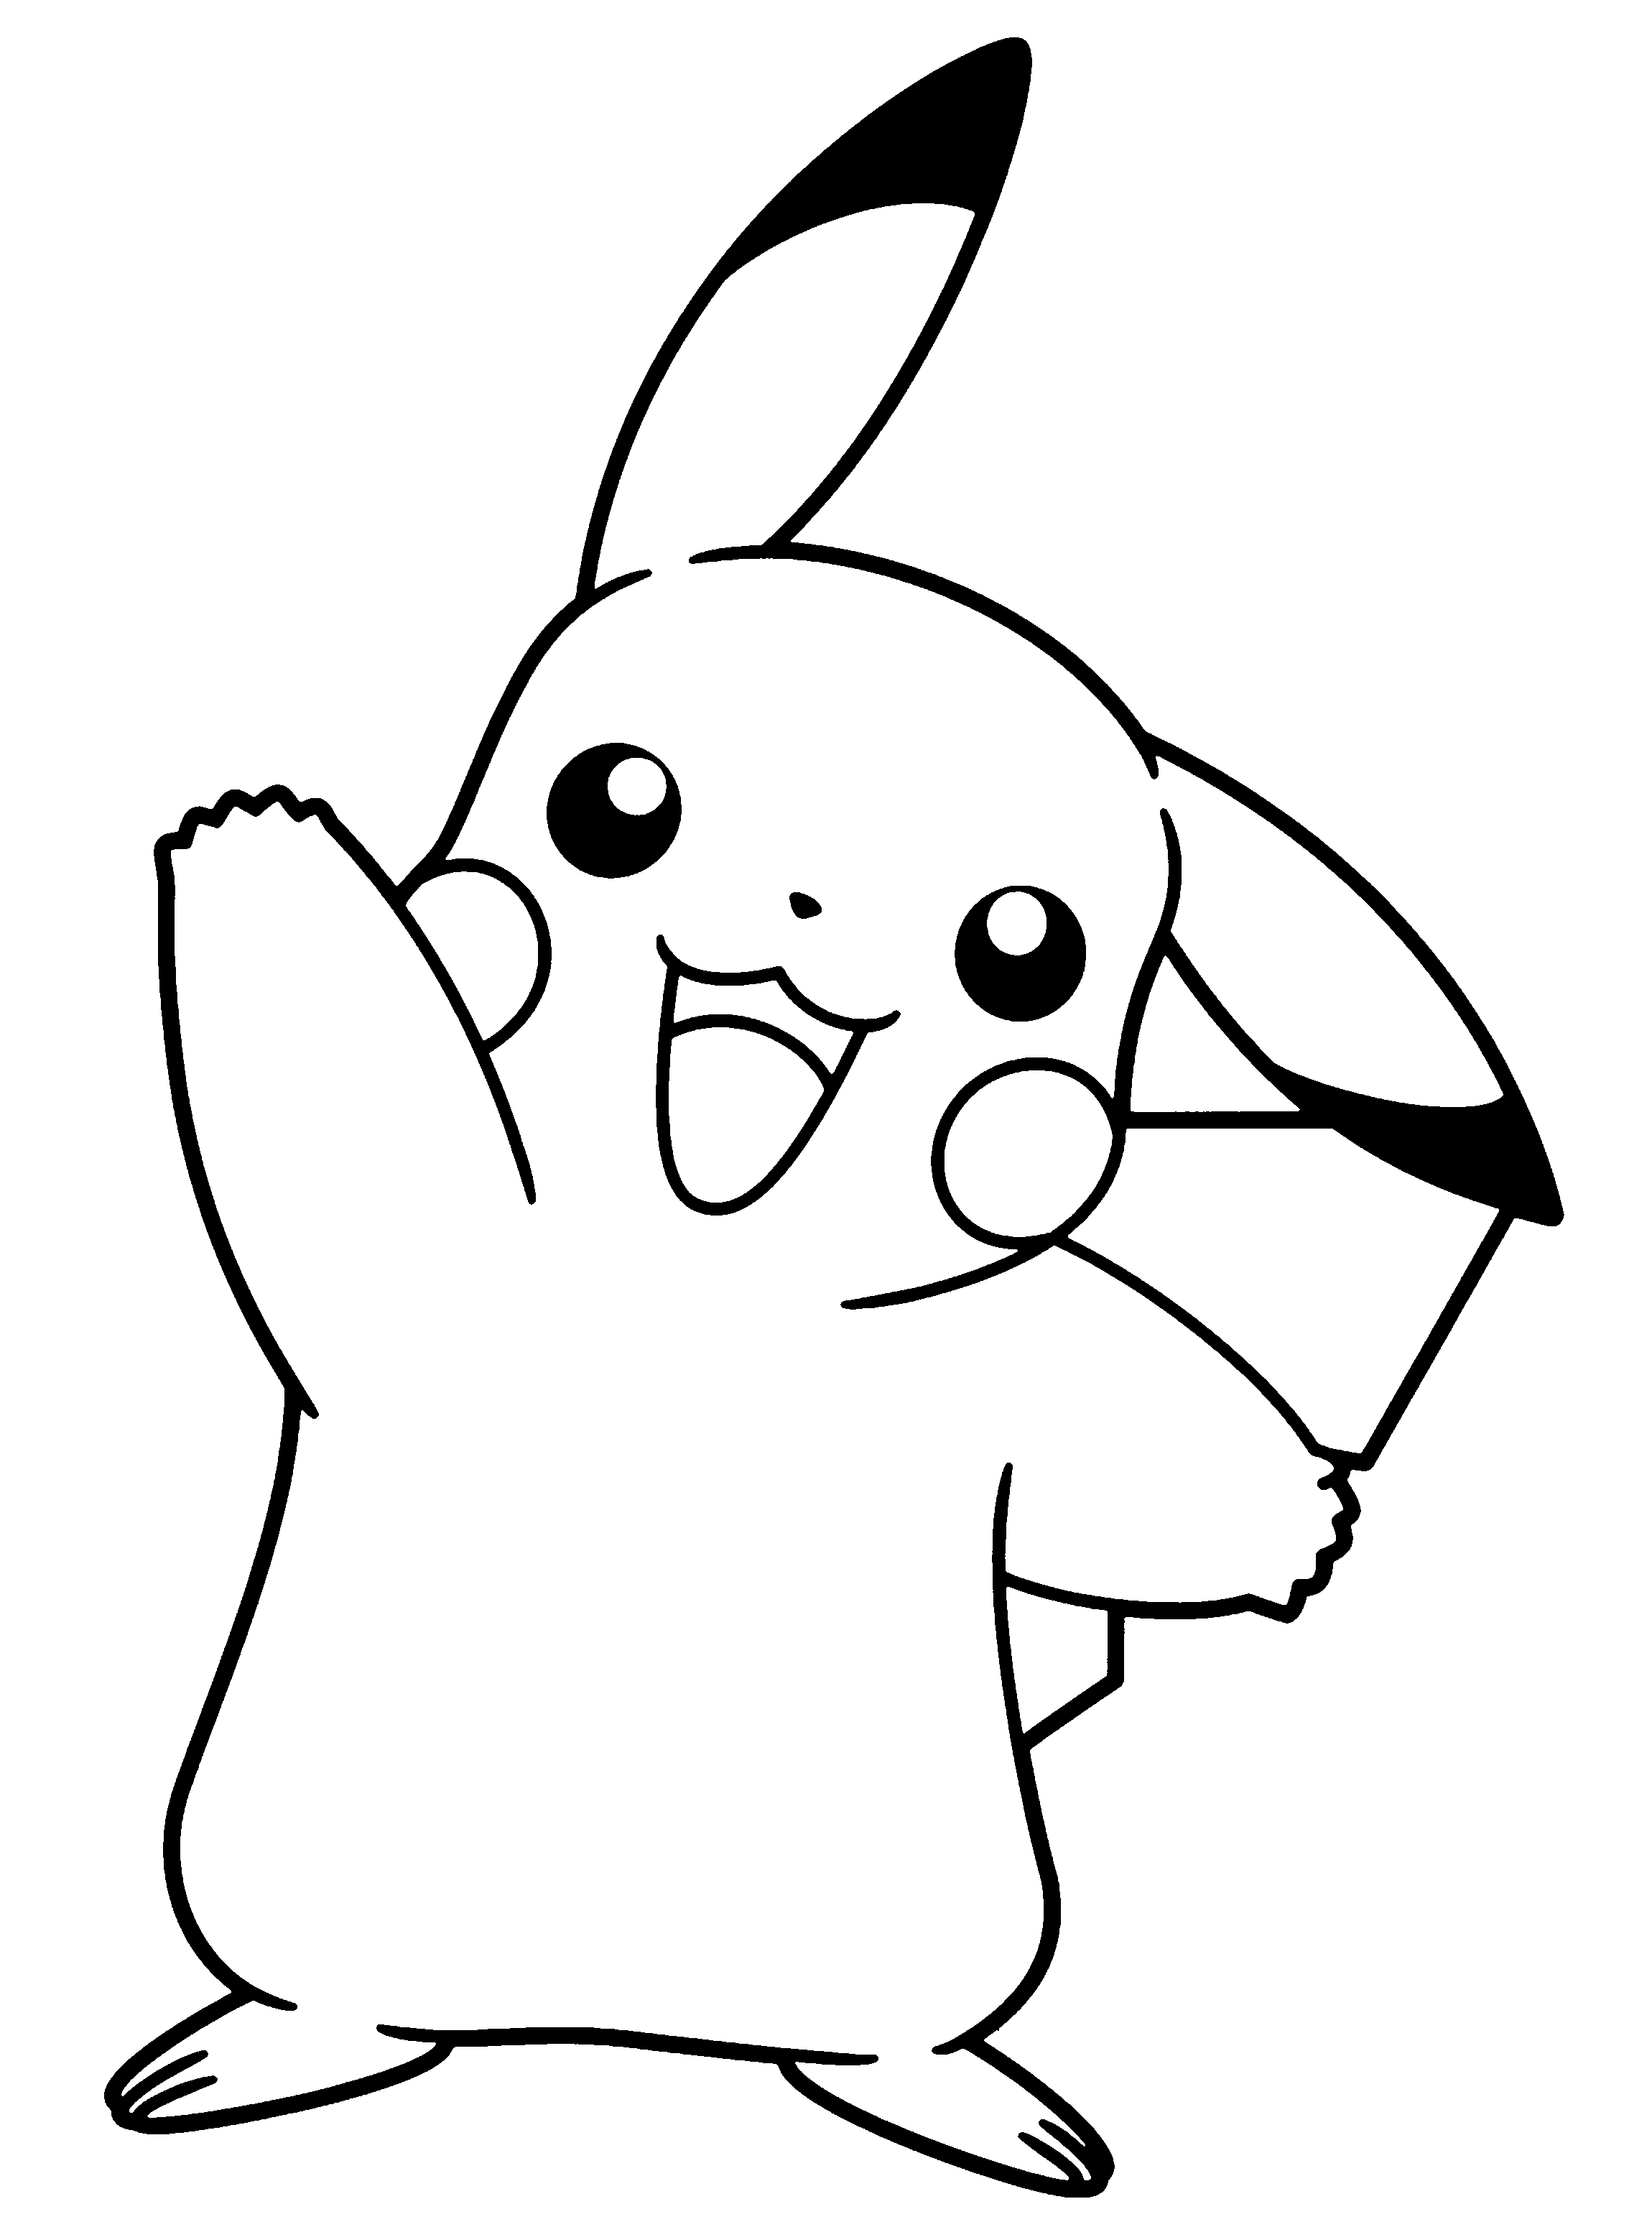 pokemon coloring pictures black and white pokemon black and white clipart clipground coloring white black pokemon pictures and